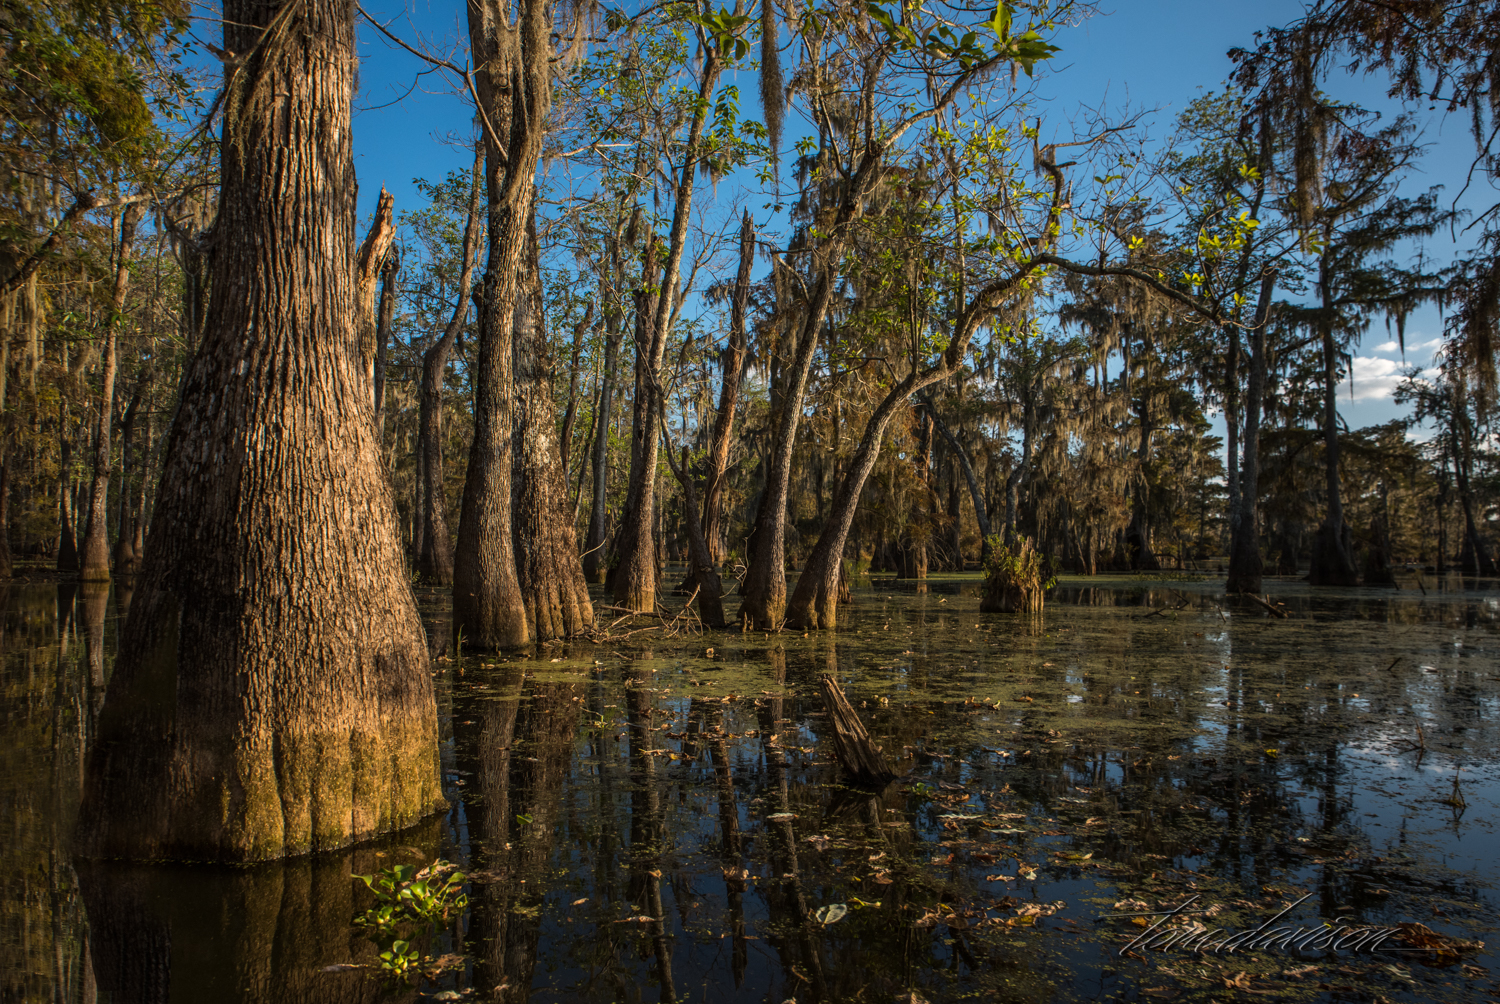 One of the first impressions I got as we started out on the swamp was that it is a messy looking place. There is so much abundant life everywhere, including below the surface of the water.